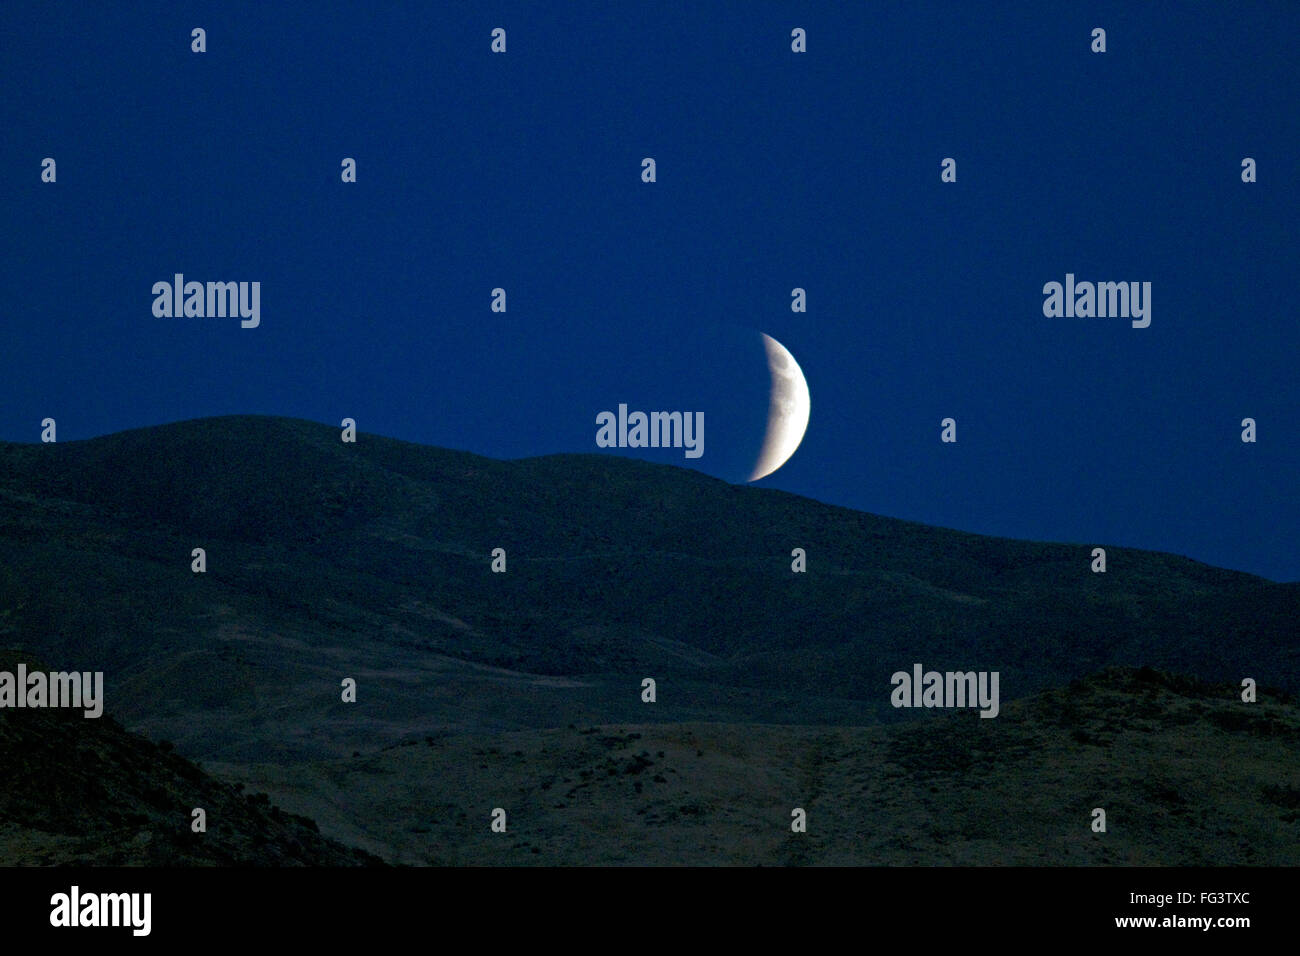 Lunar eclipse rising in the night sky above Boise, Idaho, USA. Stock Photo